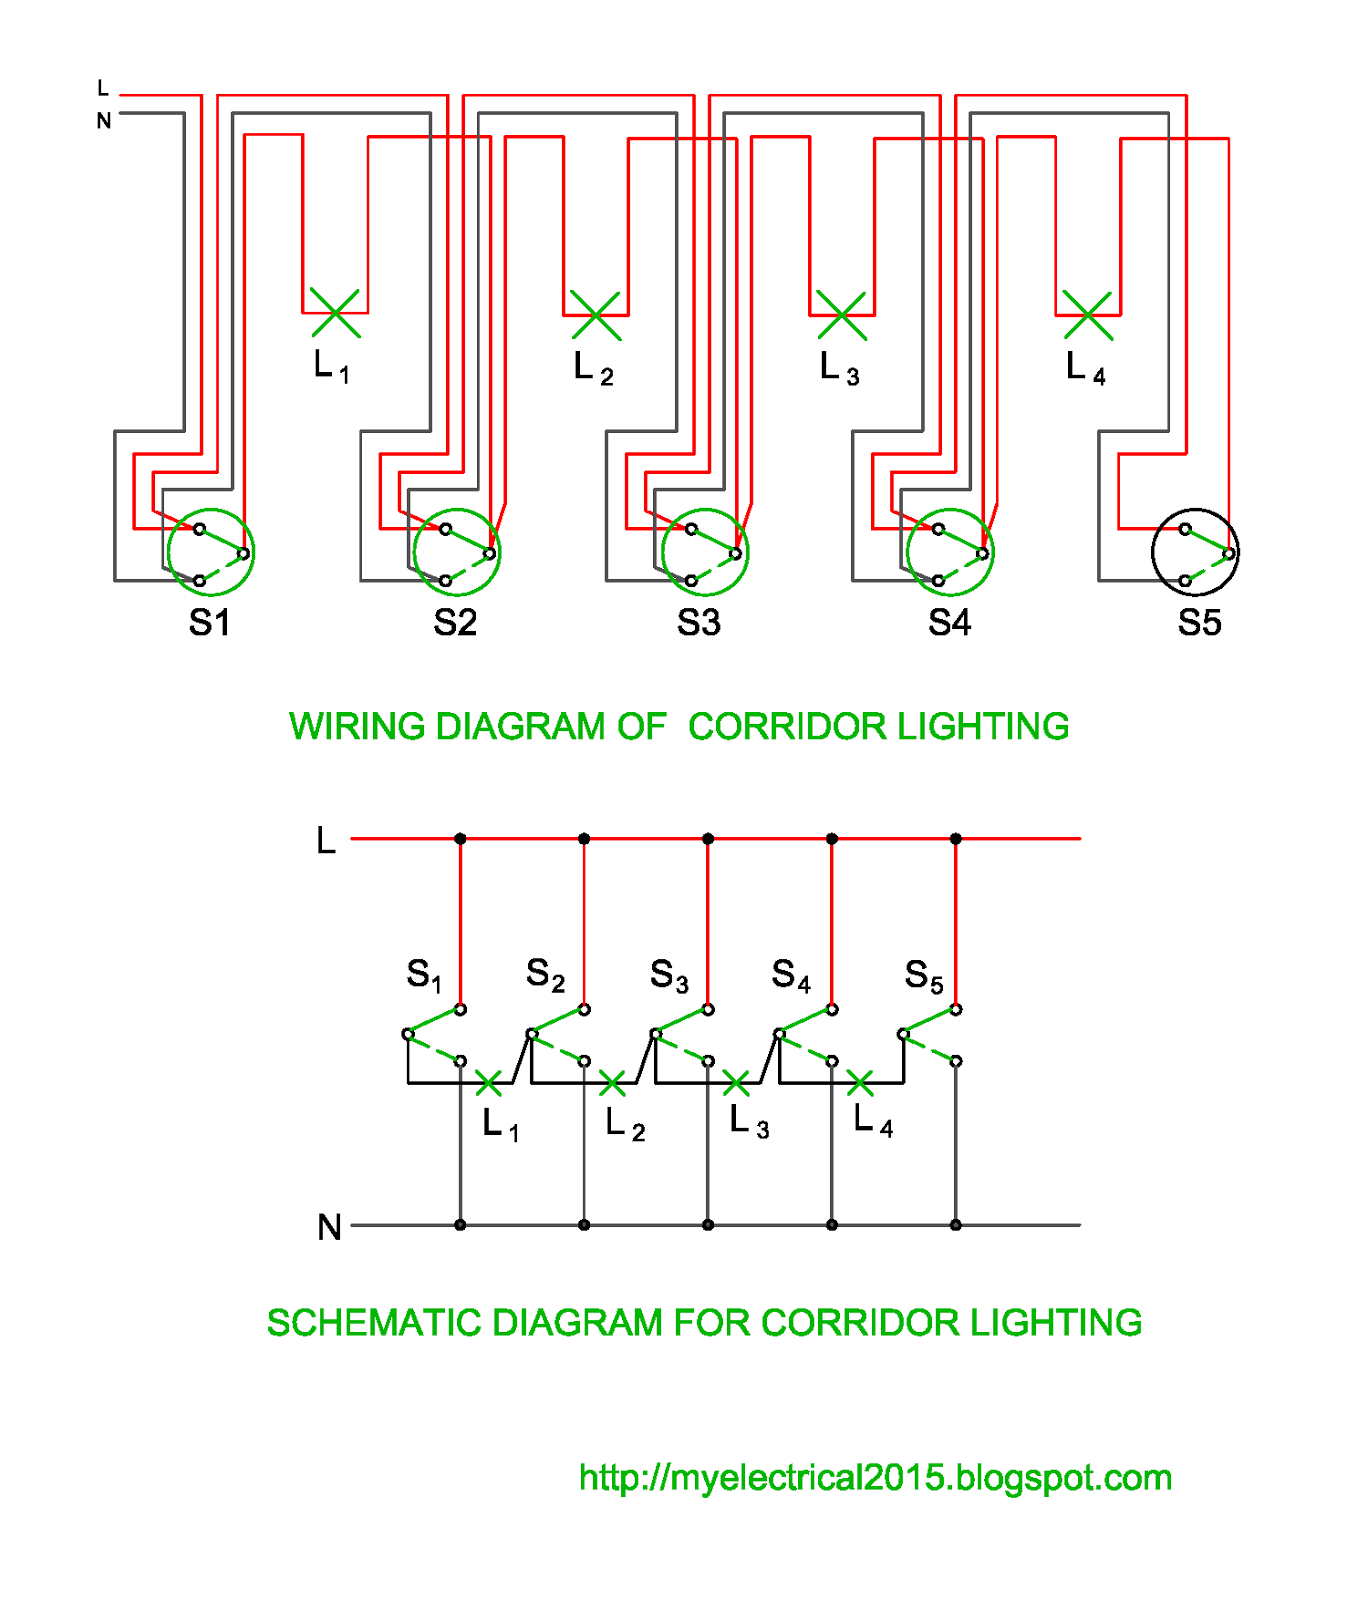 small resolution of wiring and schematic diagram of corridor lighting